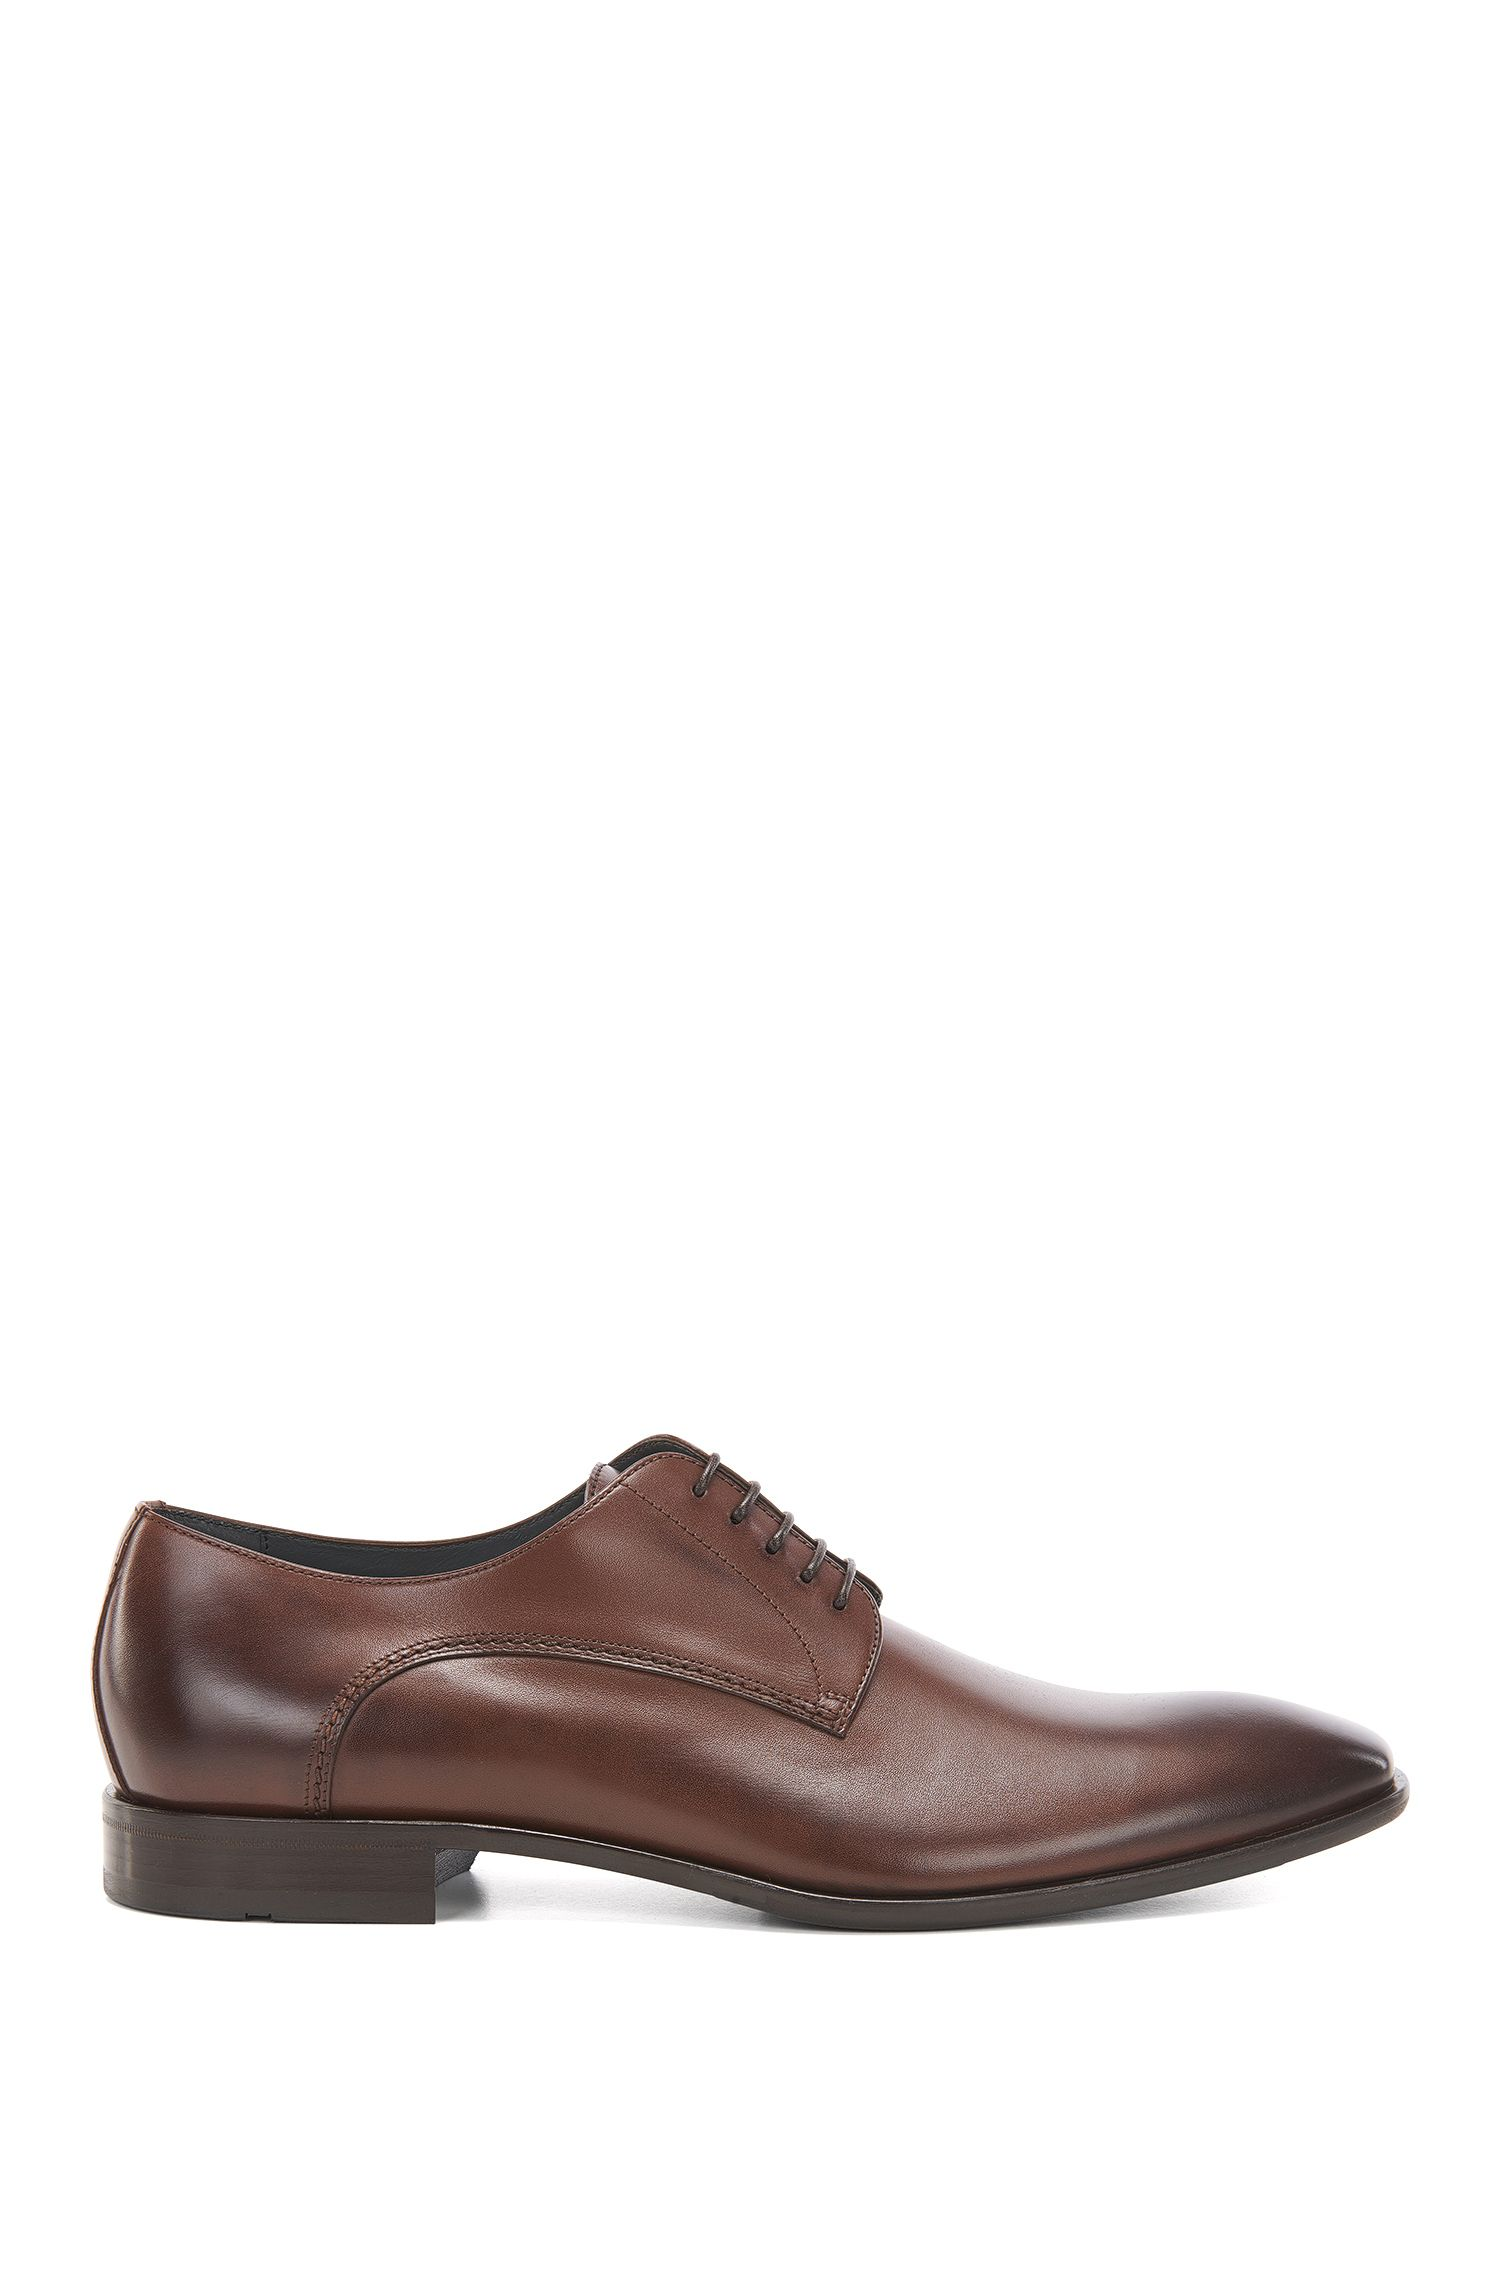 Scarpe Oxford di pelle con finitura anticata by BOSS Uomo